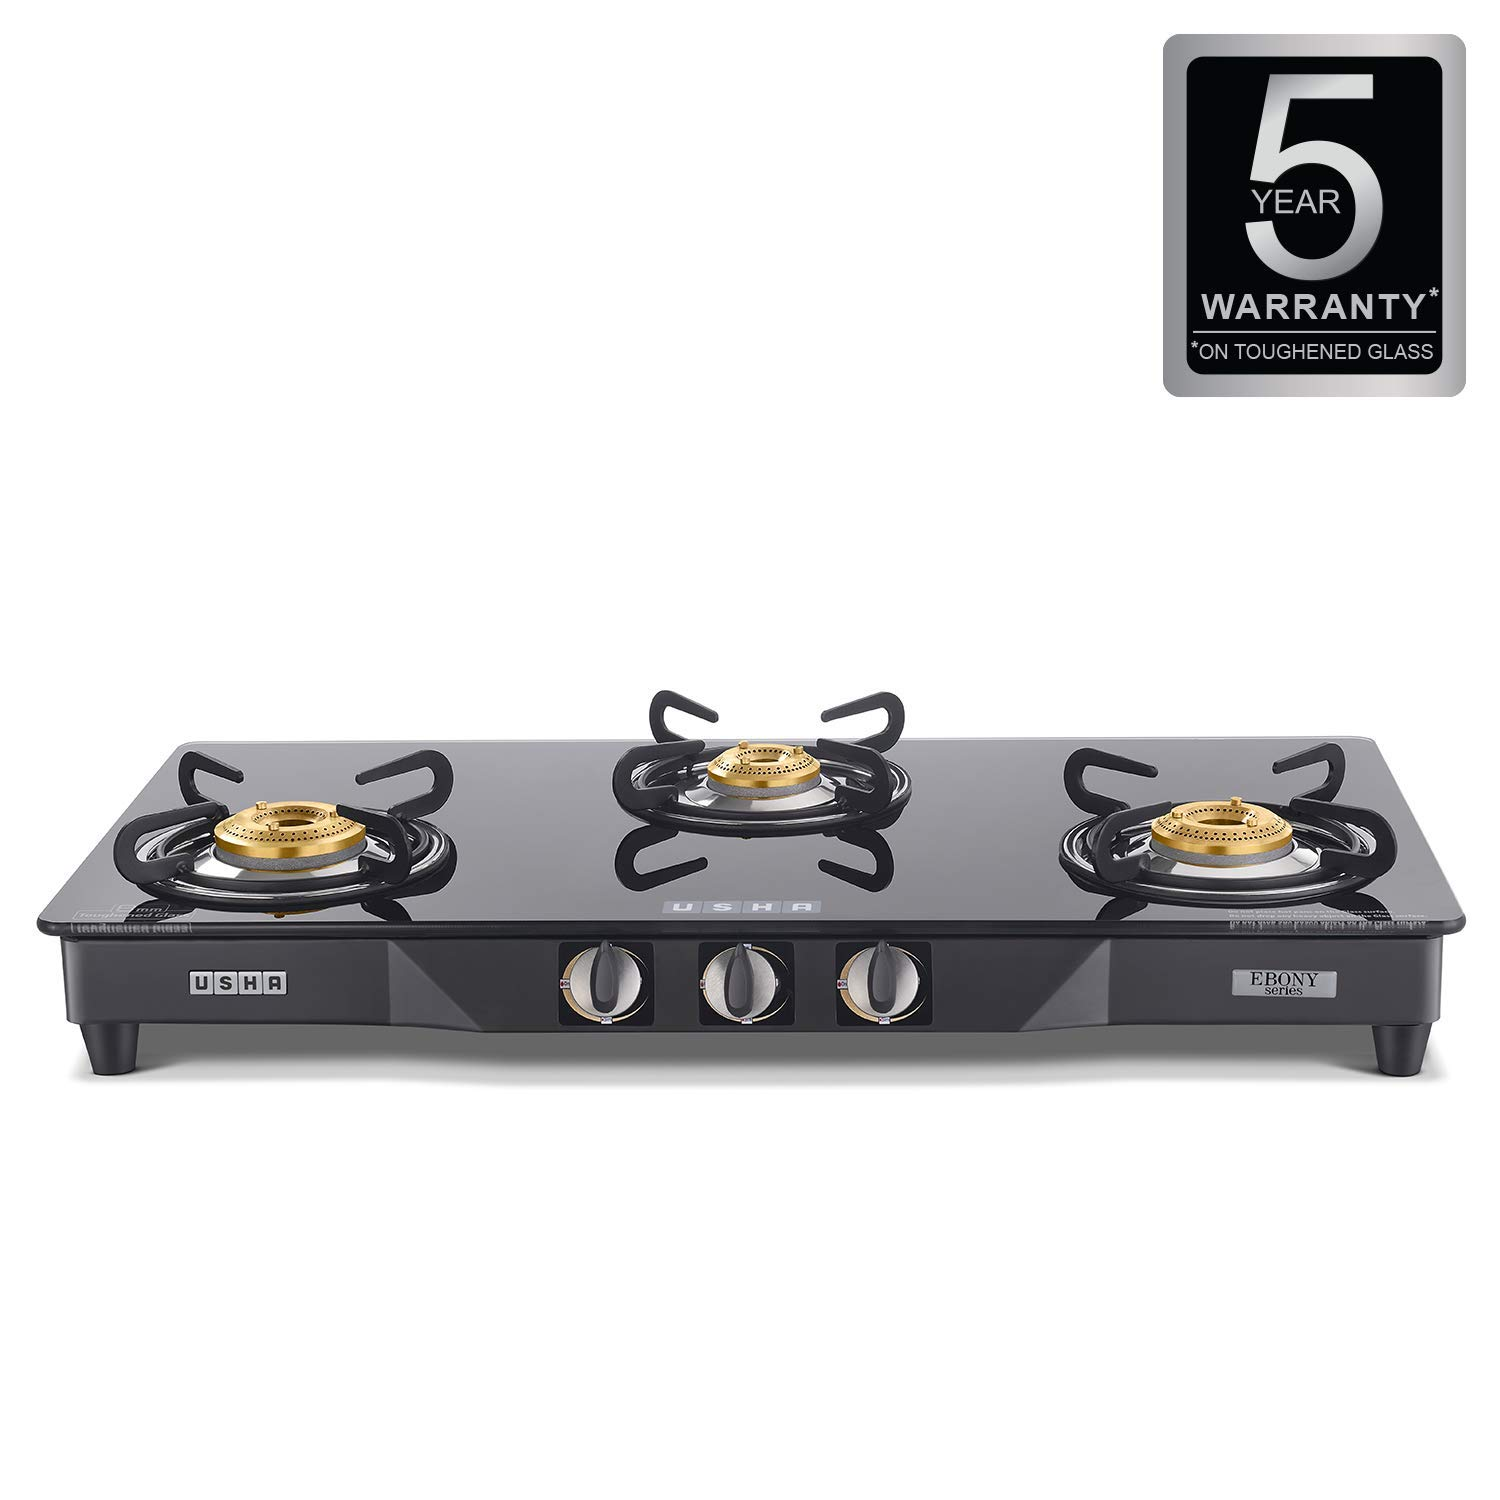 Usha EB GS3 001 Cooktop Ebony 3001 (Black)